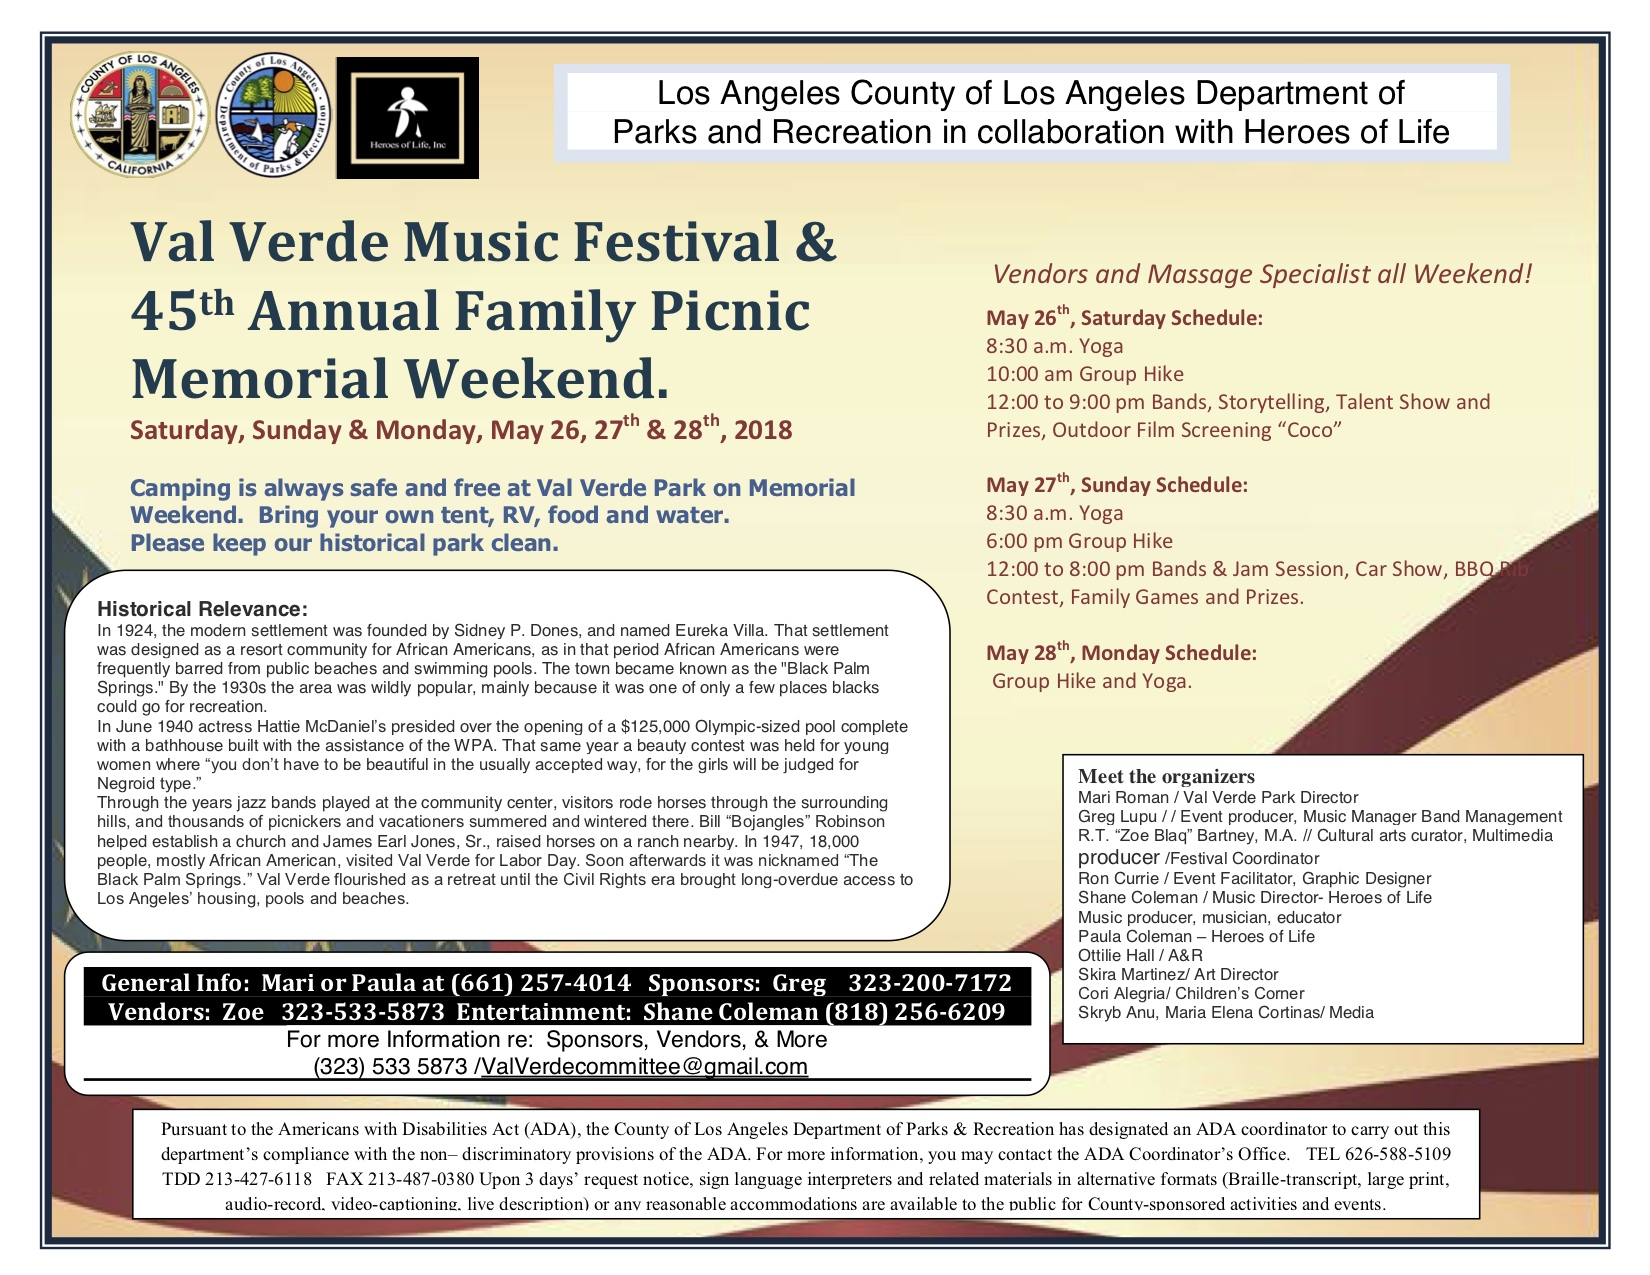 Val-Verde-Park-Memorial-Day-Weekend-Event-Flyer-5-15-2018